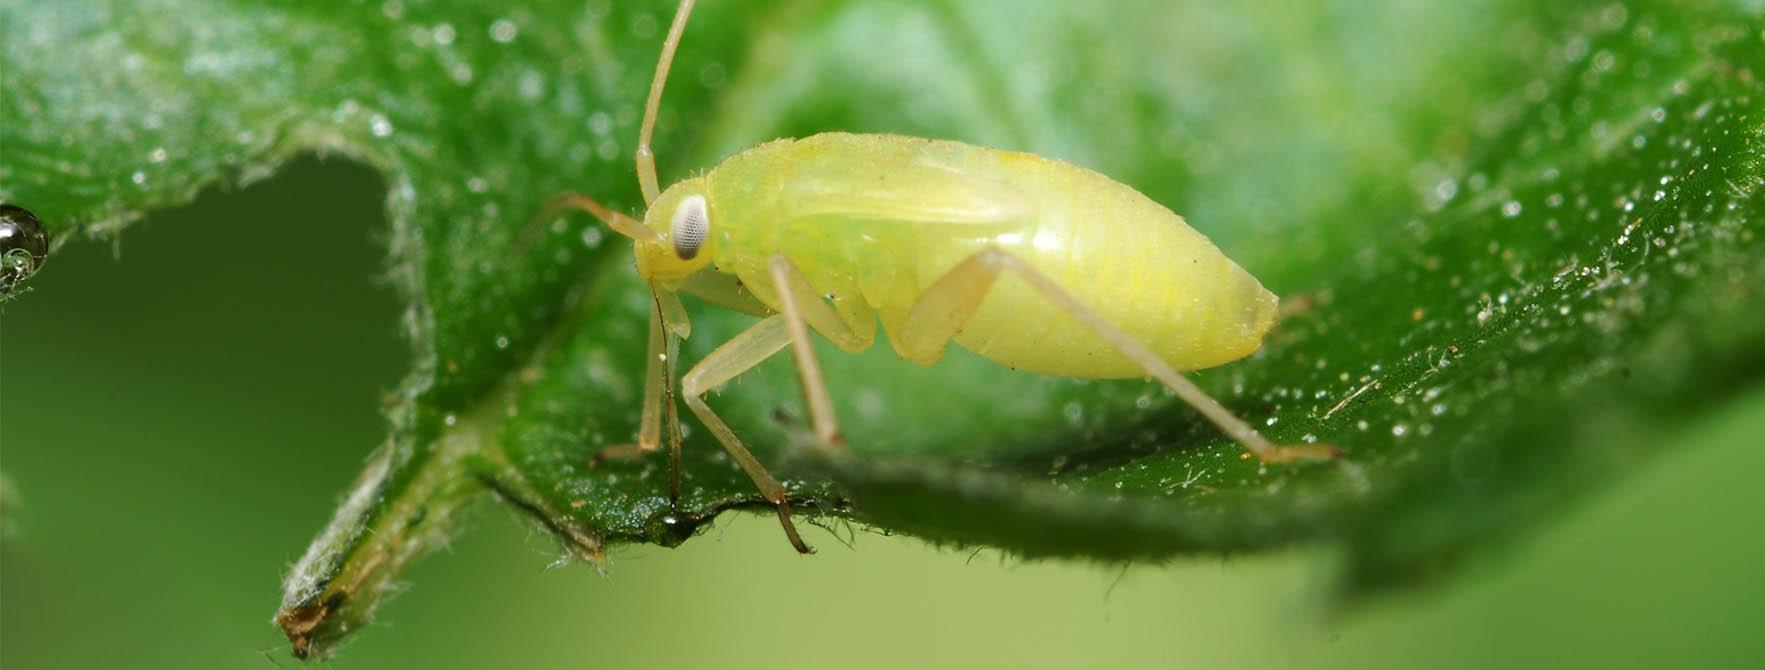 Aphids controlled by Greenbug